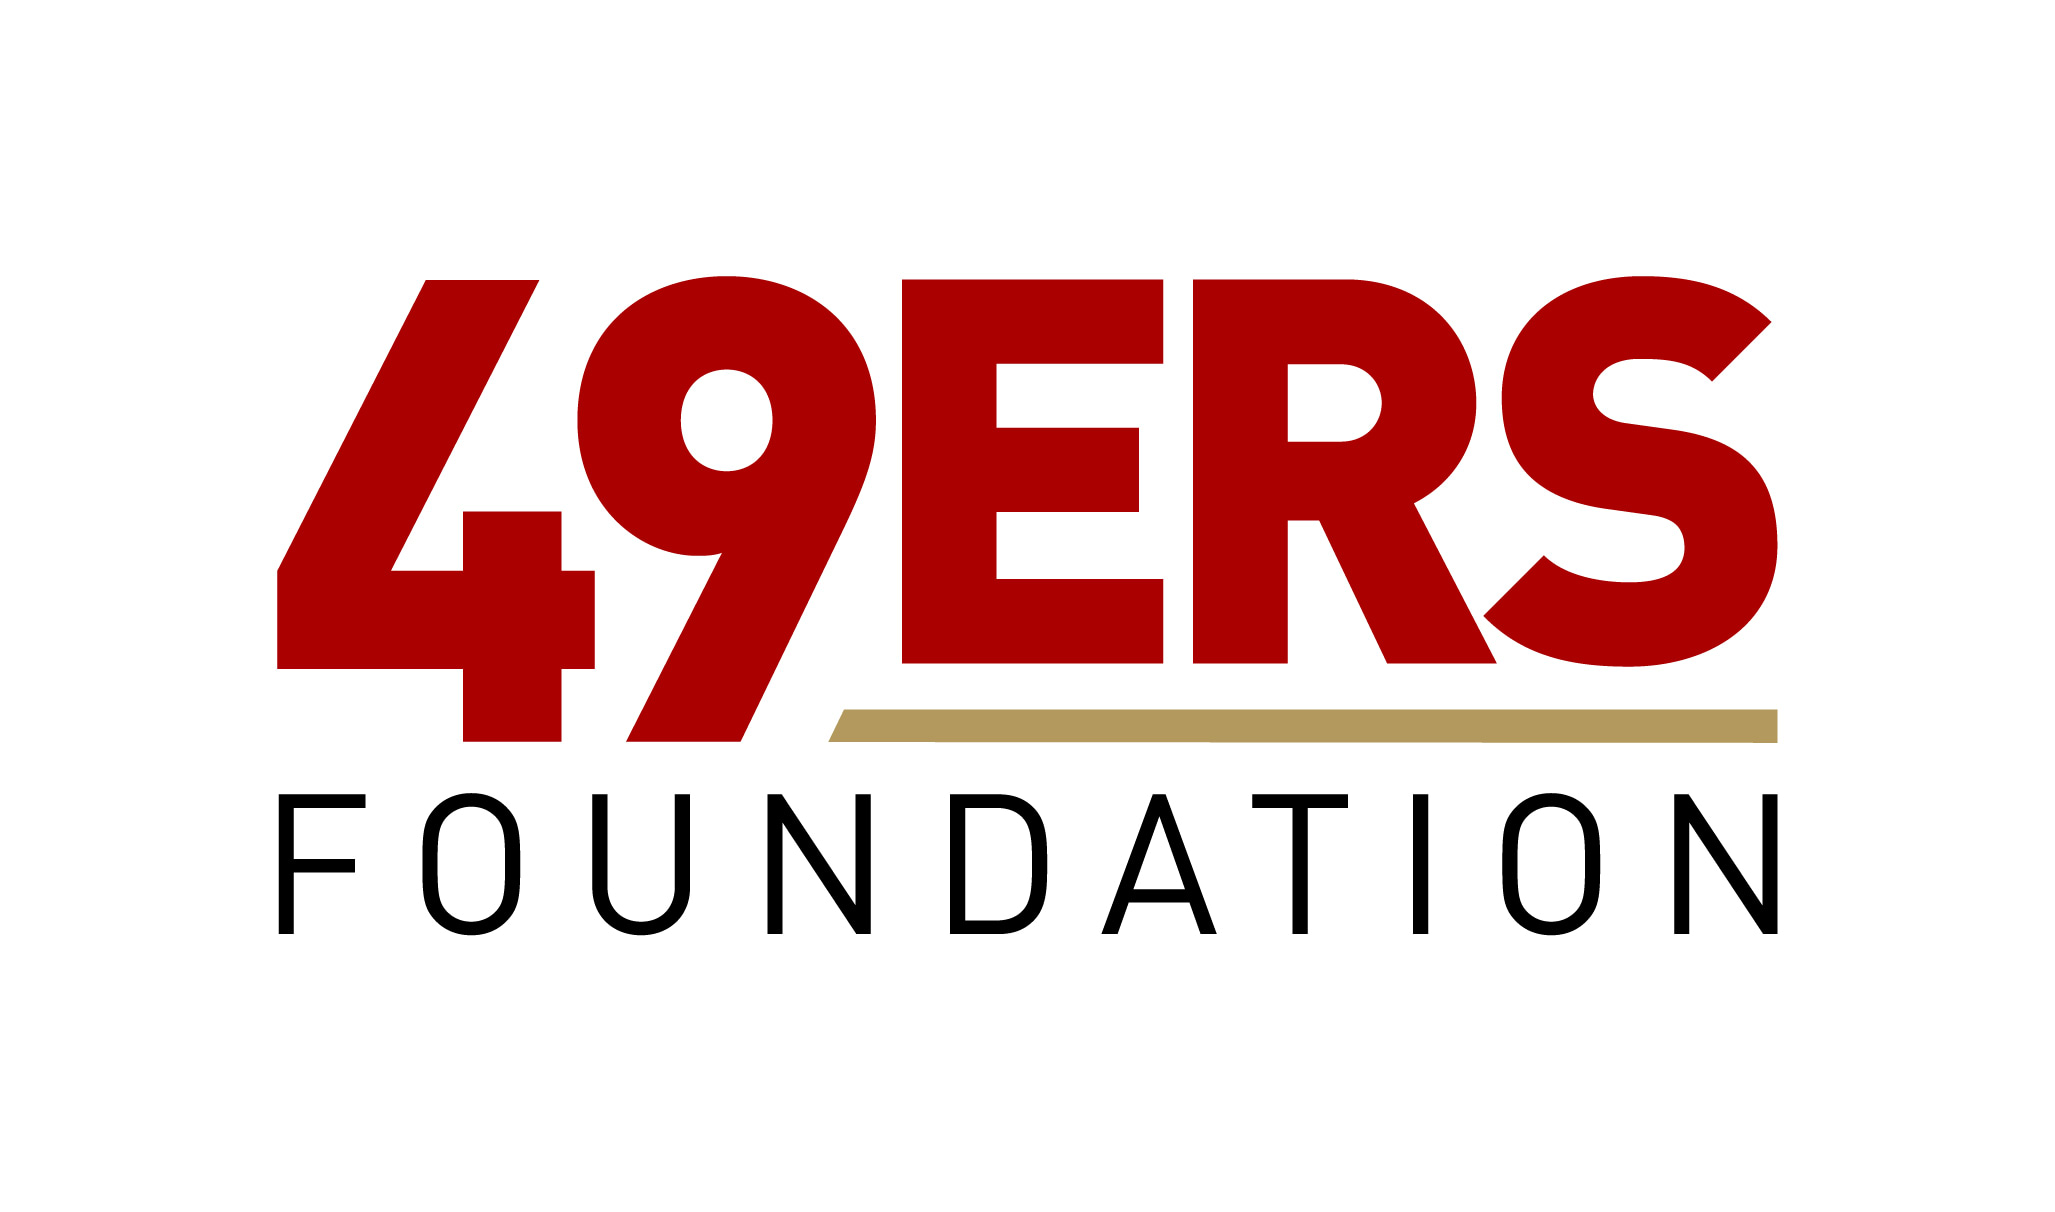 About 49ers Foundation